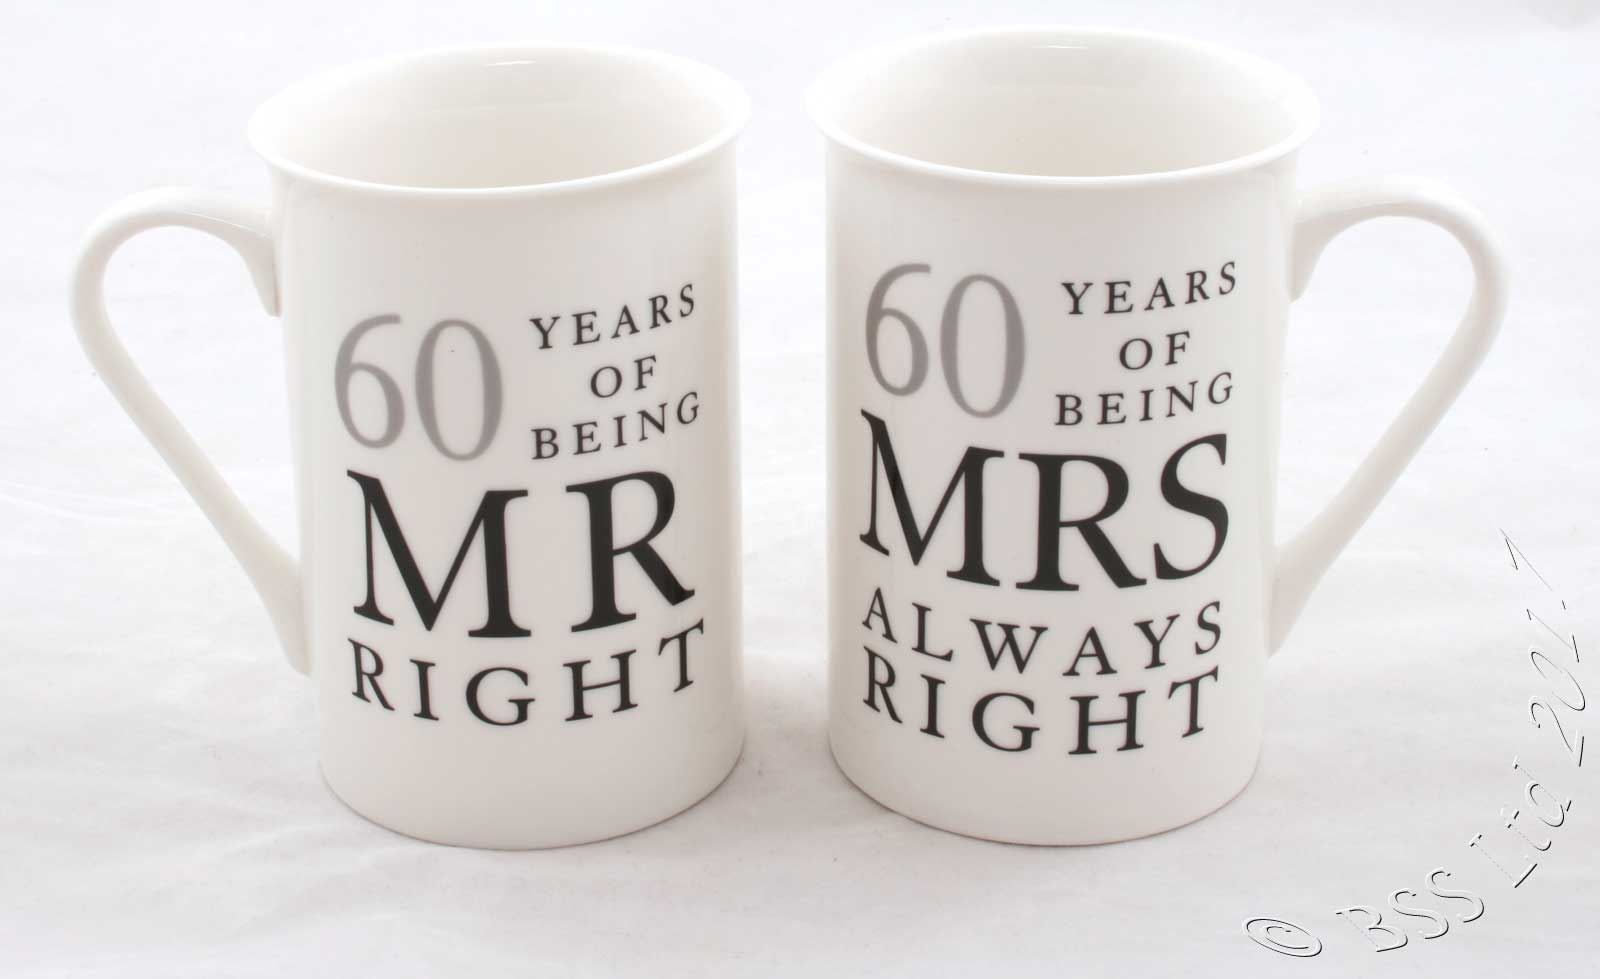 40th Wedding Anniversary Gifts For Friends: Wedding Anniversary Gift Set, Mr/Mrs Right Mugs 10th 25th